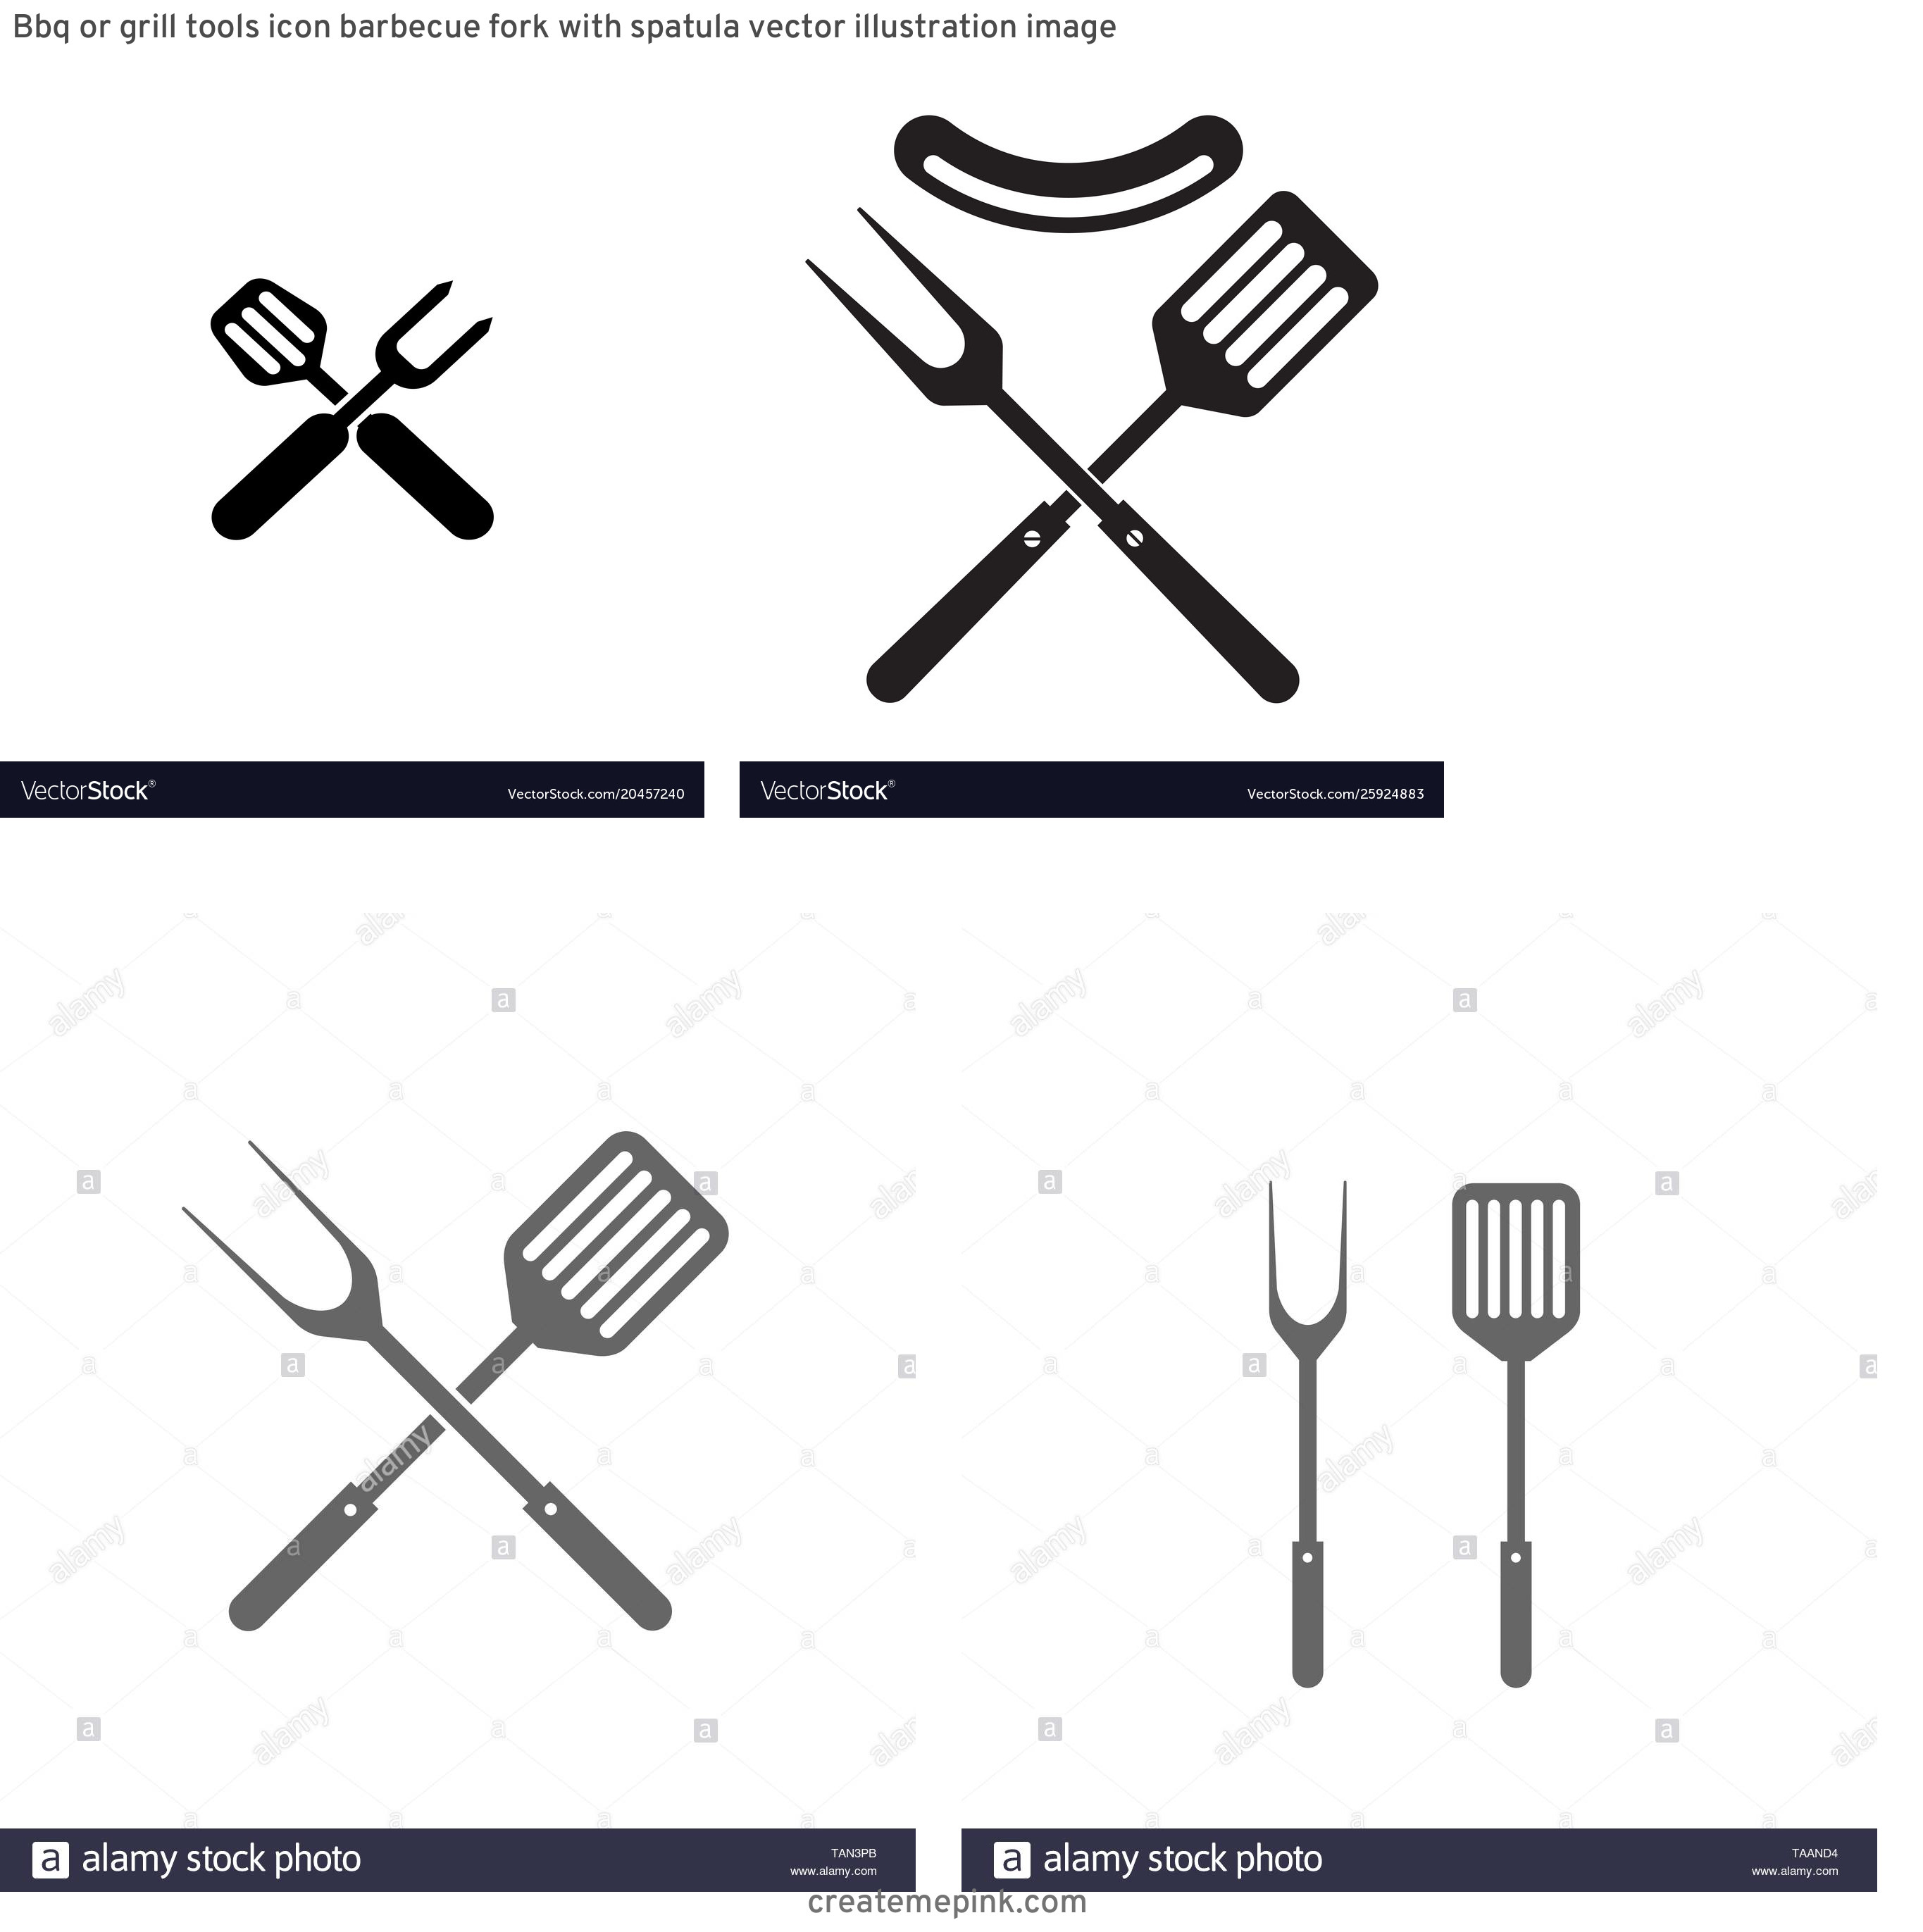 BBQ Fork Vector: Bbq Or Grill Tools Icon Barbecue Fork With Spatula Vector Illustration Image